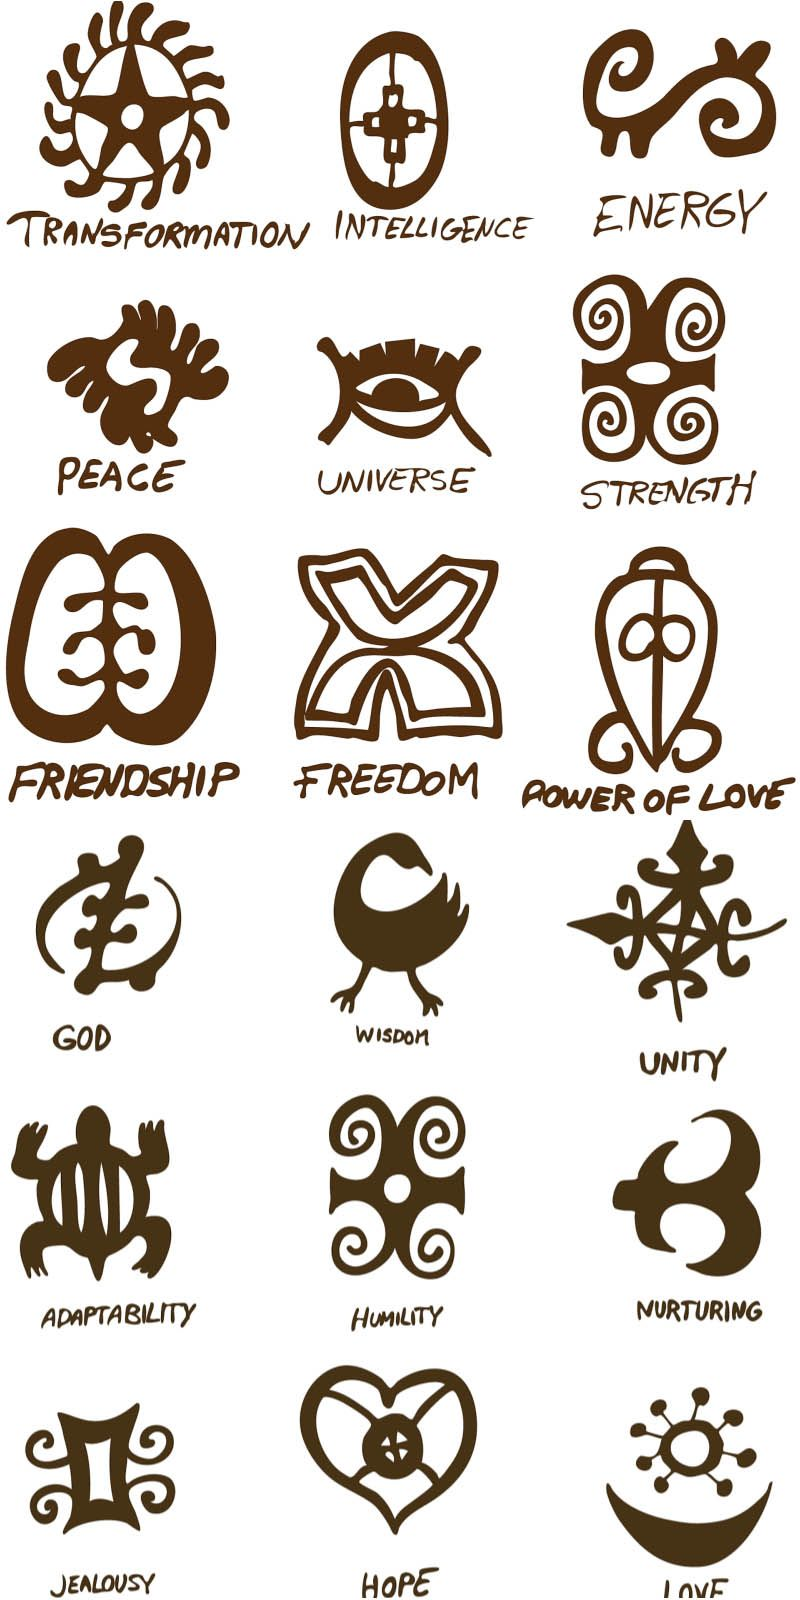 cool symbols and their meanings